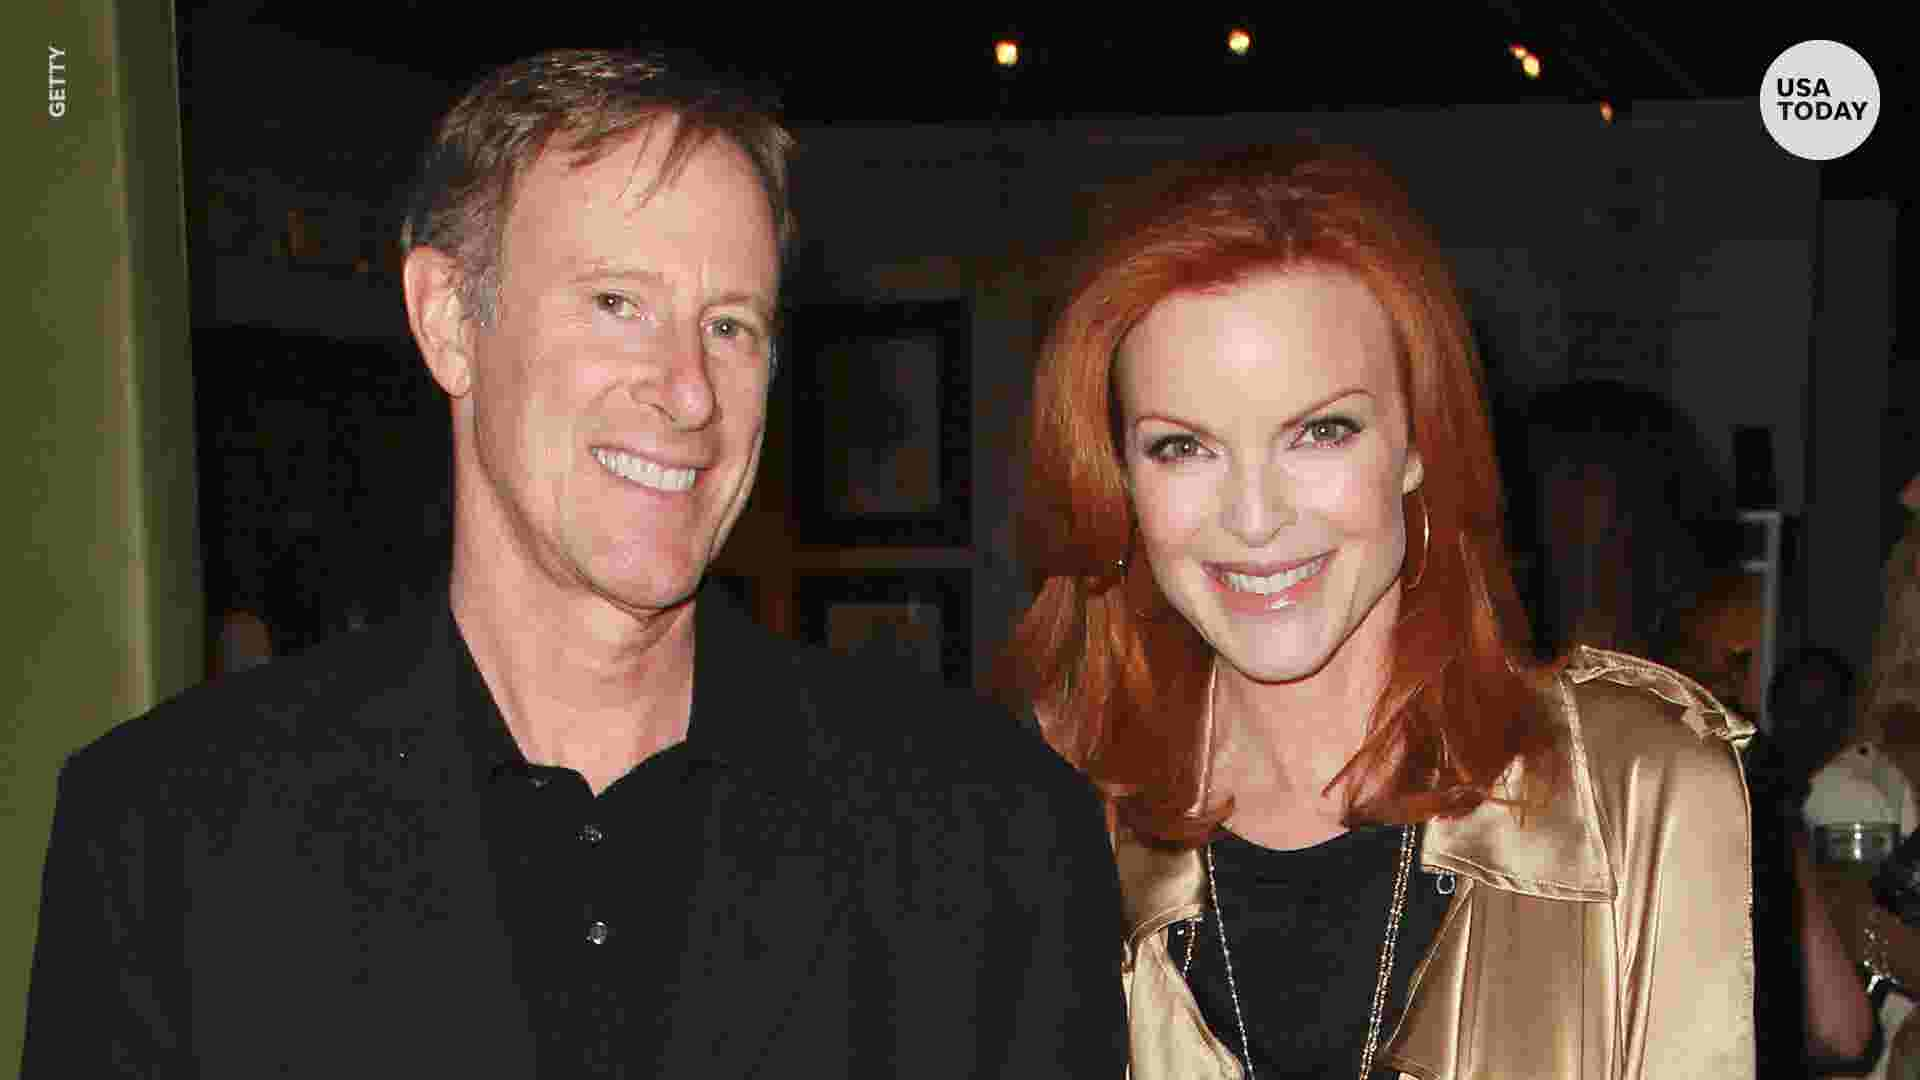 Marcia Cross opens up about anal cancer and potential link to HPV